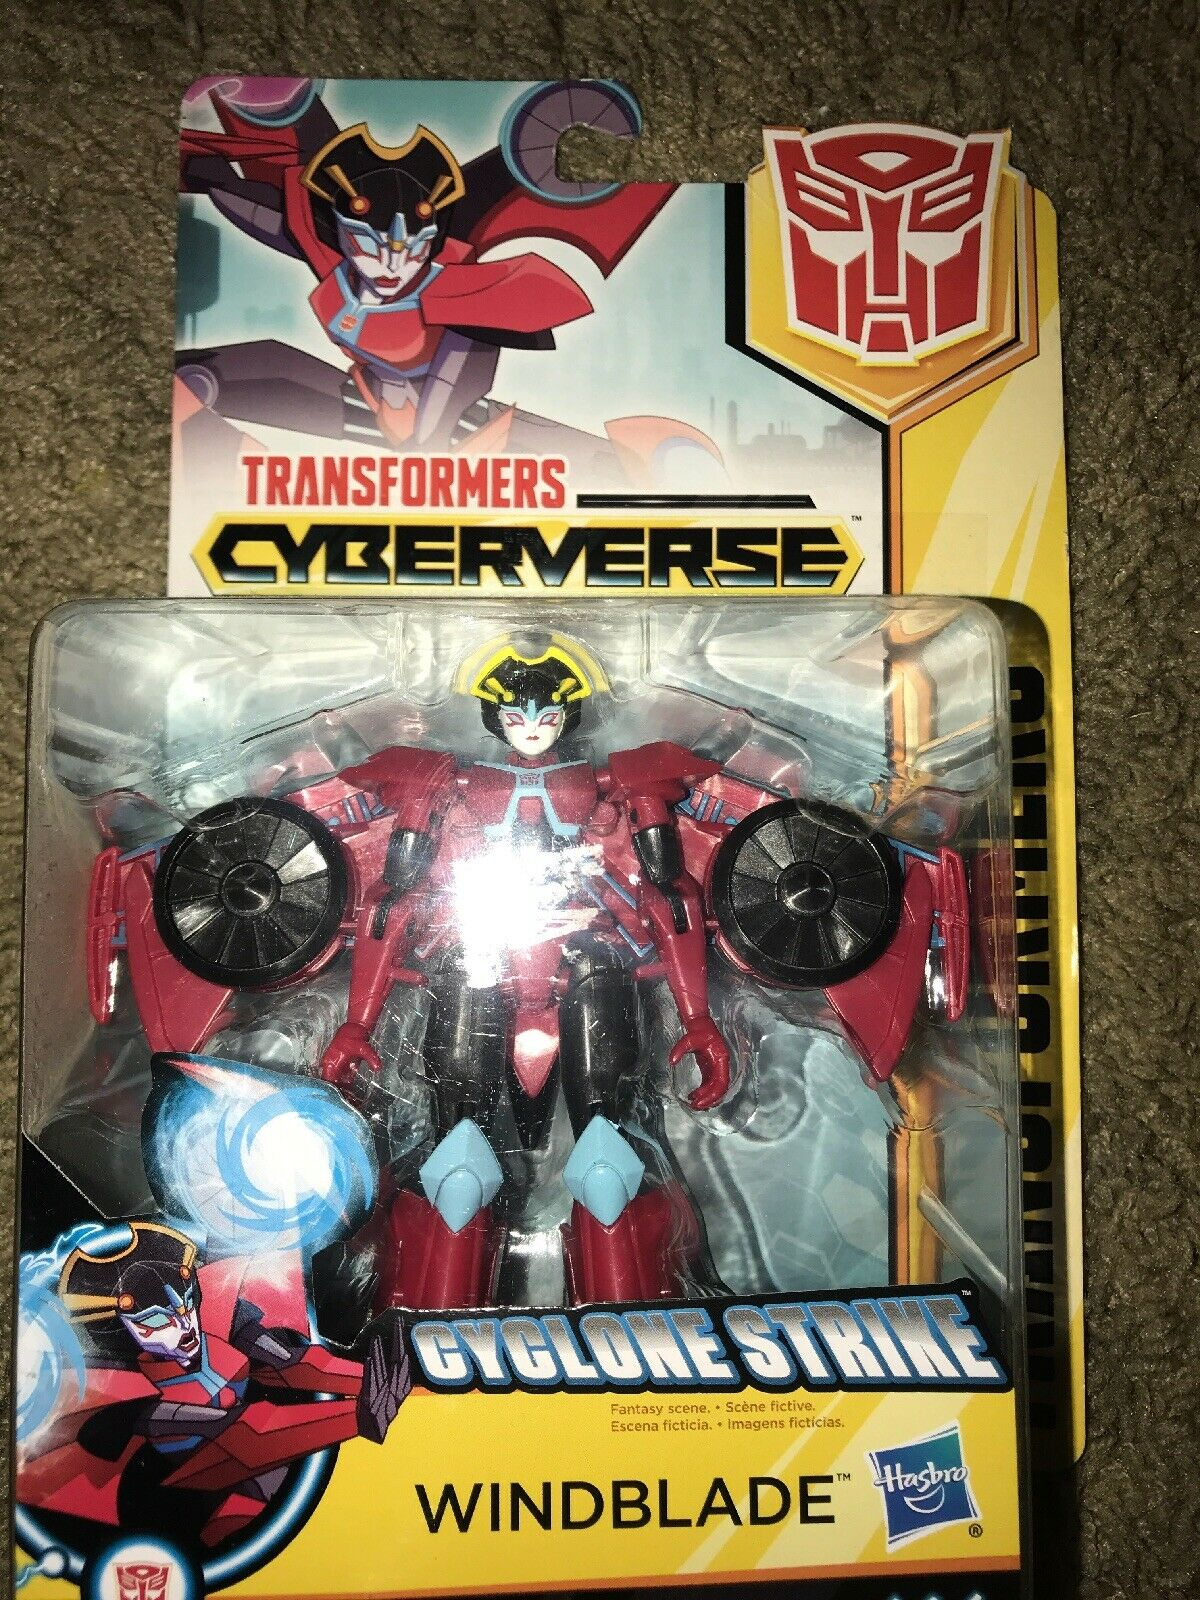 Transformers  Cyberverse WINDBLADE CYCLONE STRIKE 5in Action Figure NEW